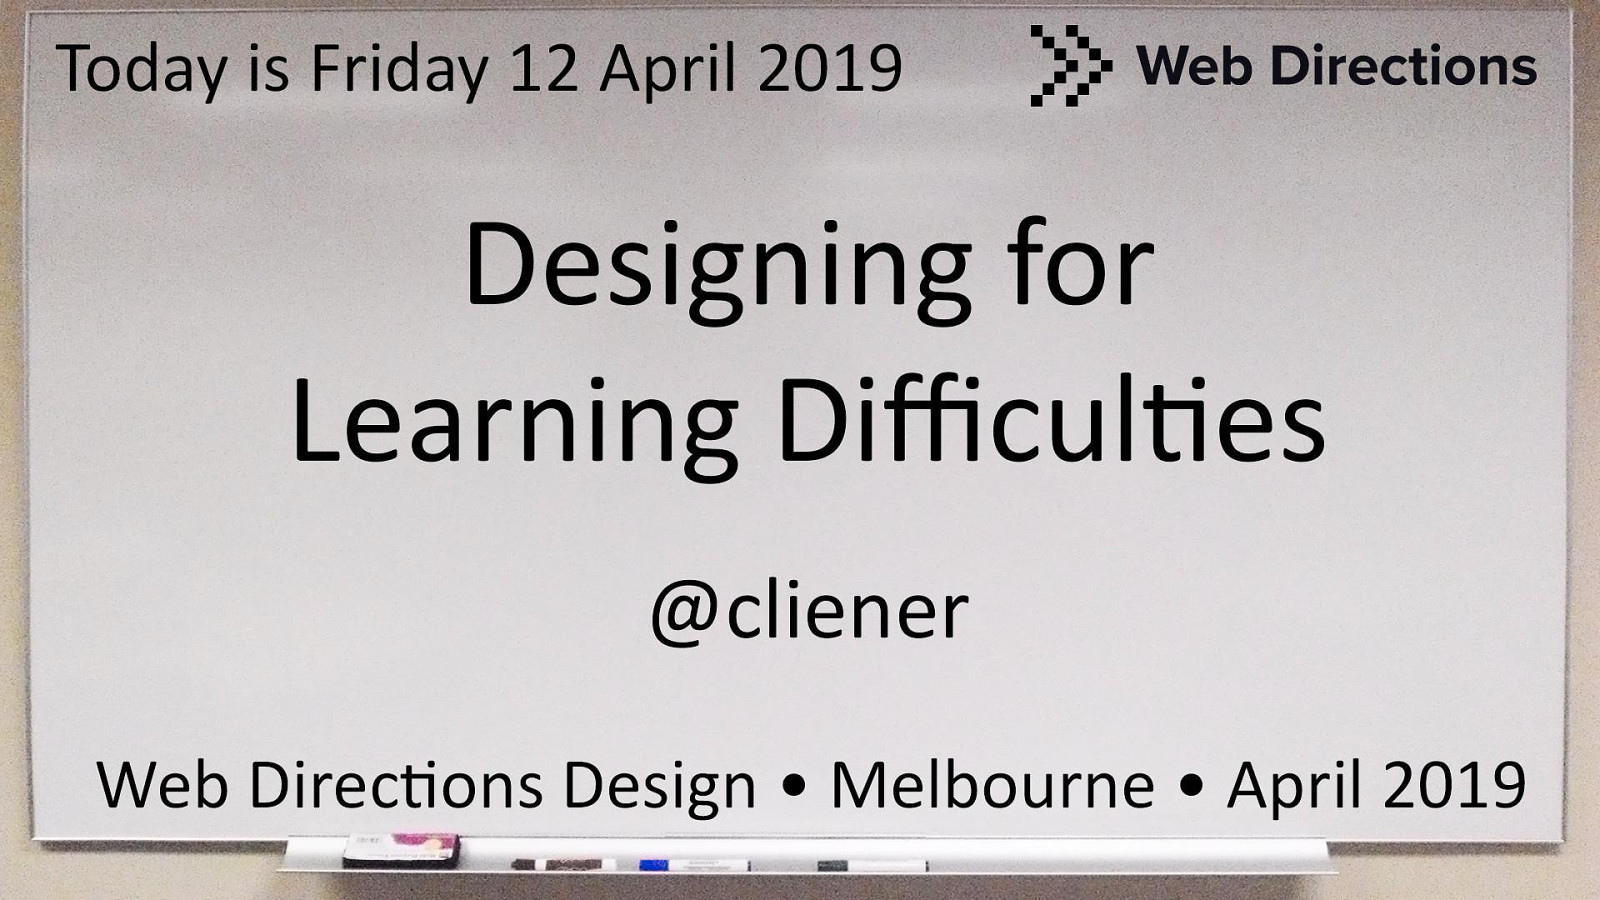 Designing for Learning Difficulties